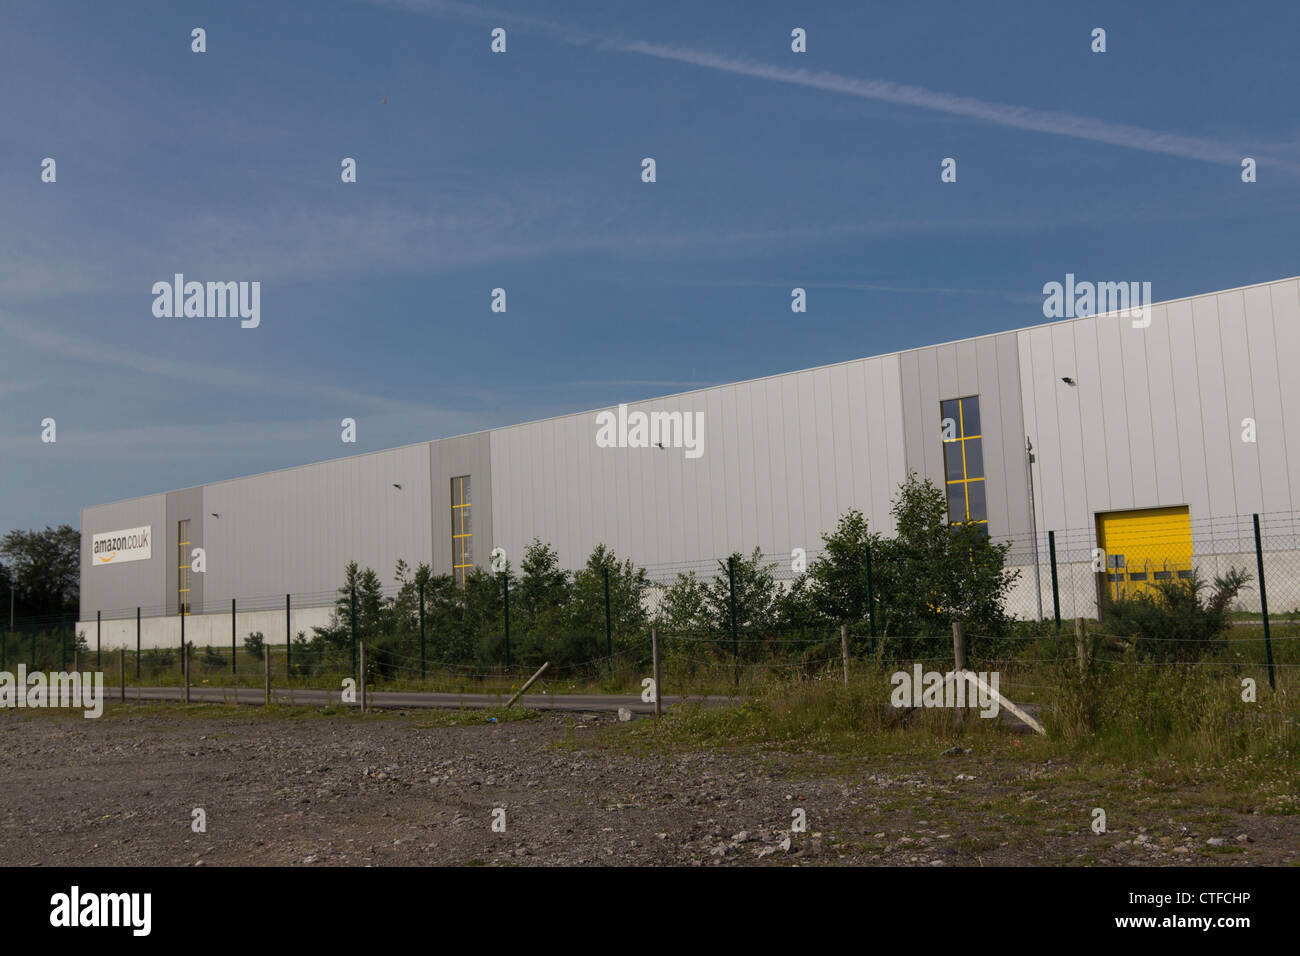 Amazon UK distribution centre at Swansea - Stock Image